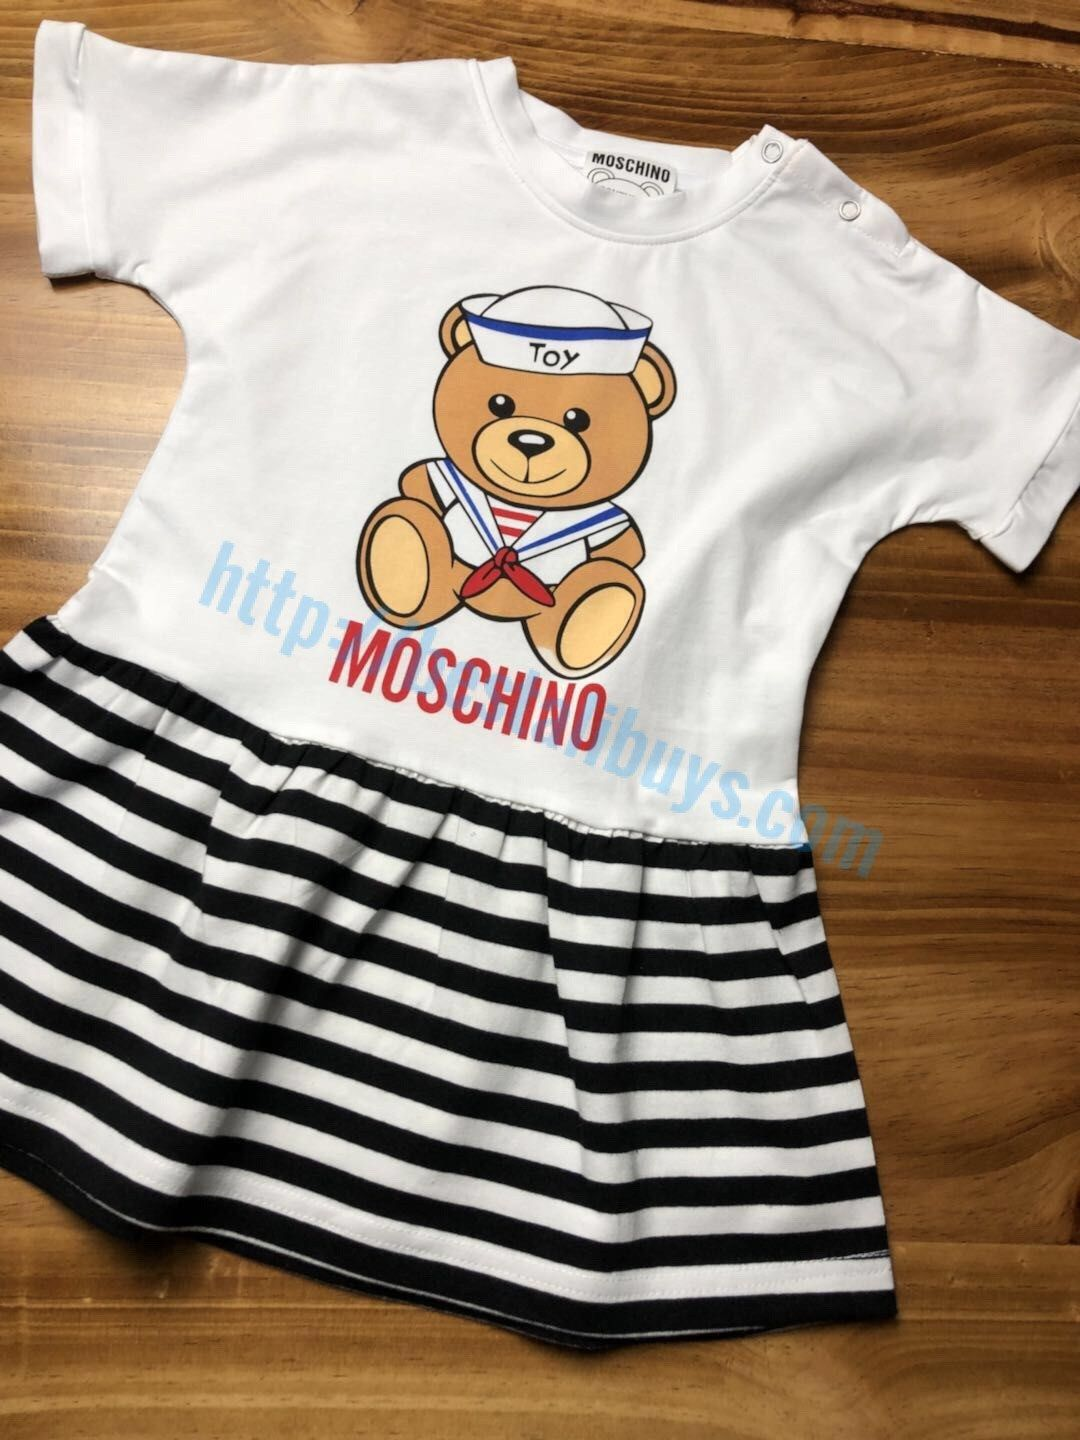 4fcc9f8df12 Moschino Dress for Kids on Aliexpress - Hidden Link   Price      FREE  Shipping     aliexpressbrand